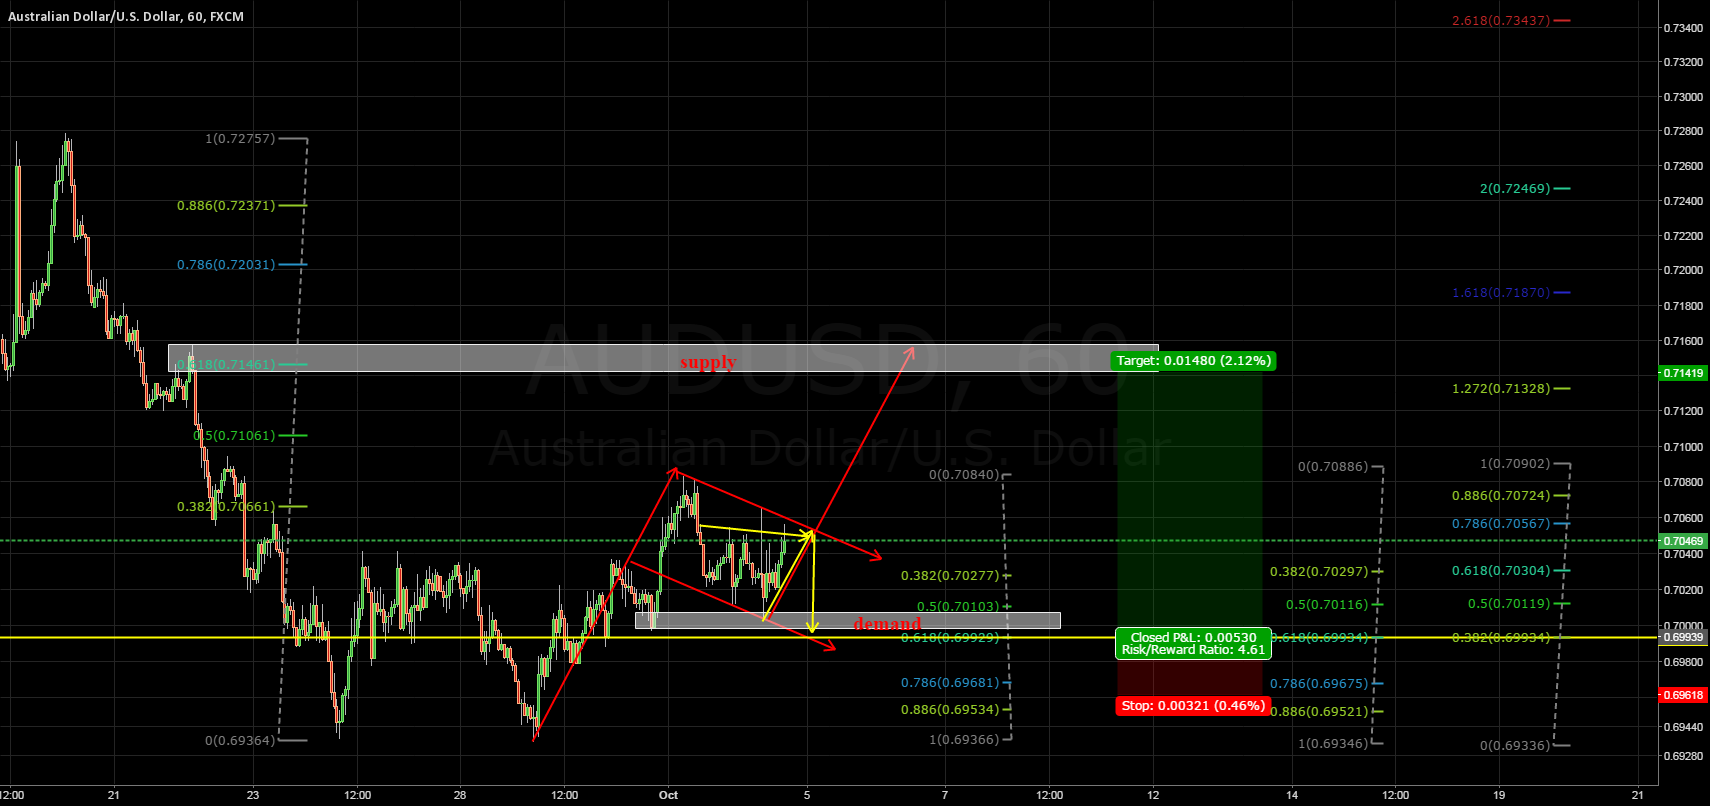 Bullish flag = AUDUSD